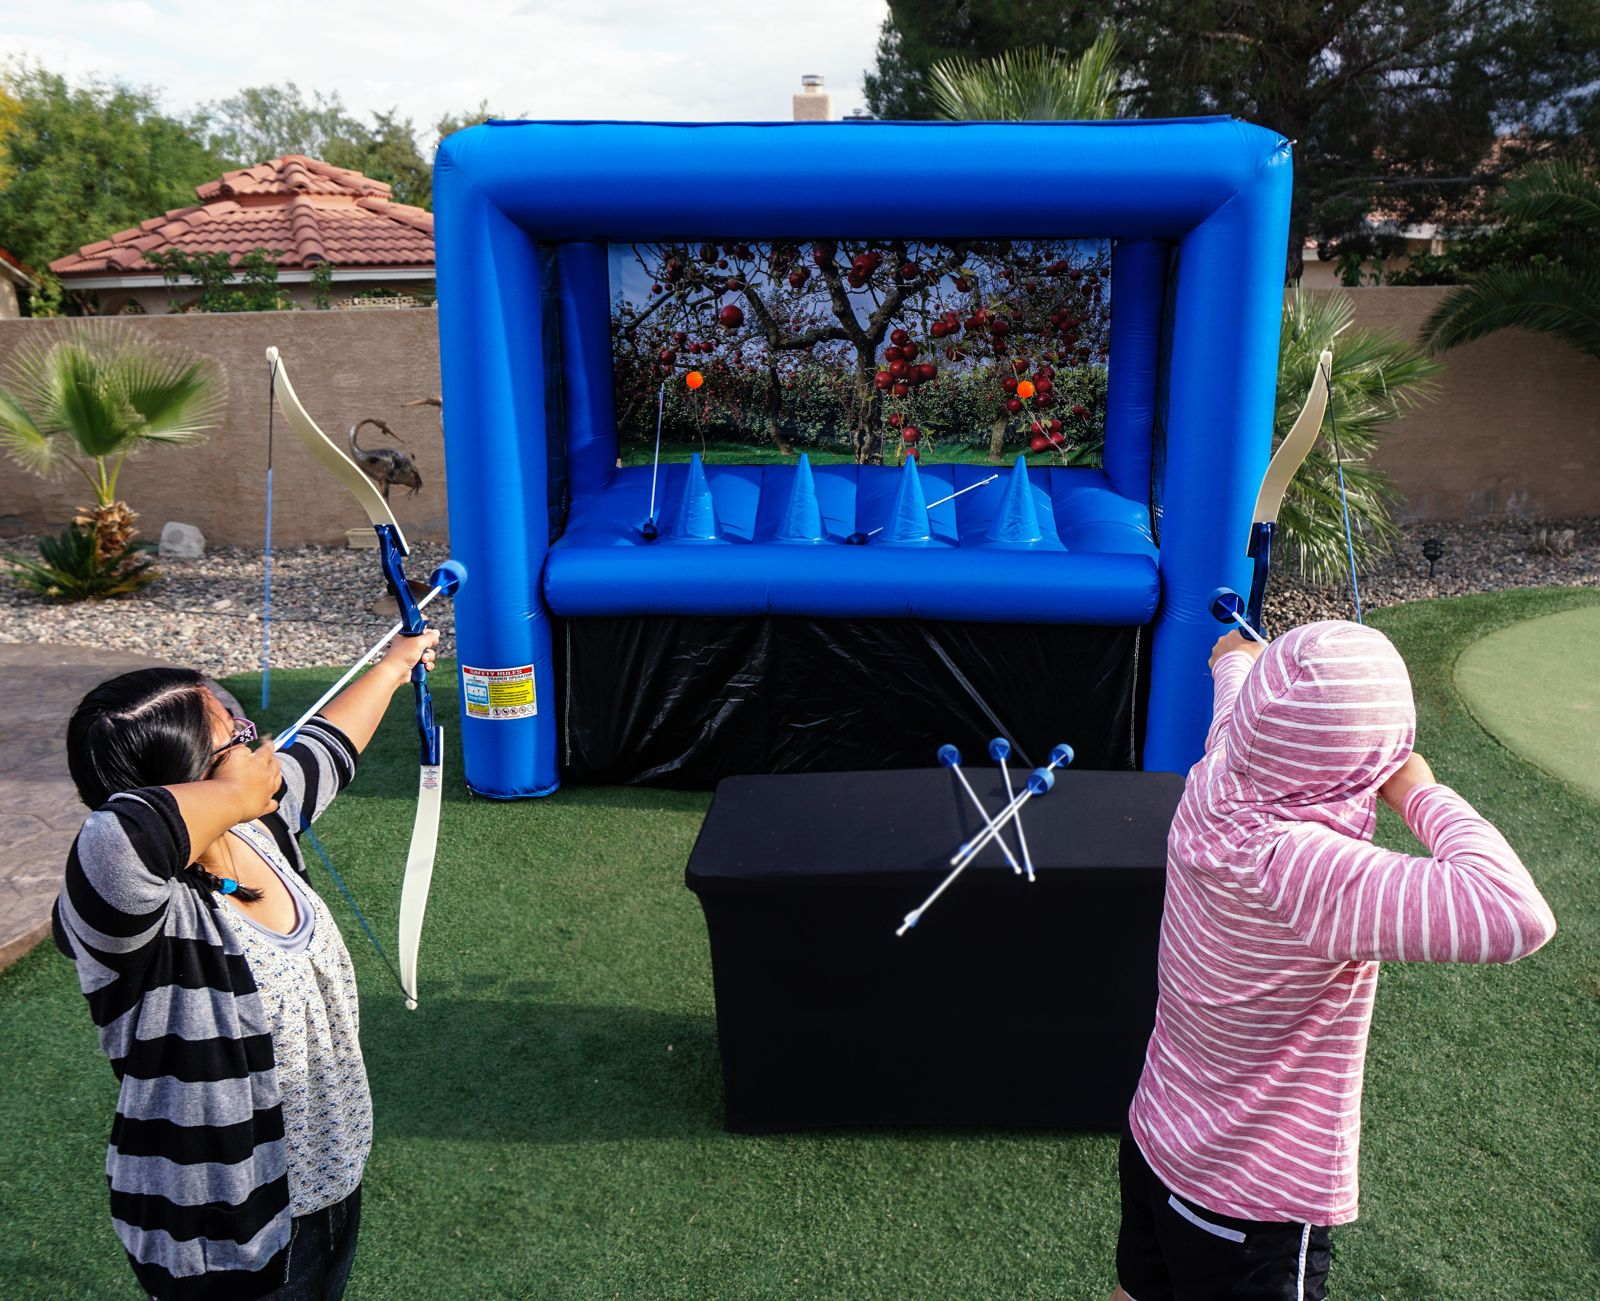 Archery hover ball games with safe sponge arrows for party